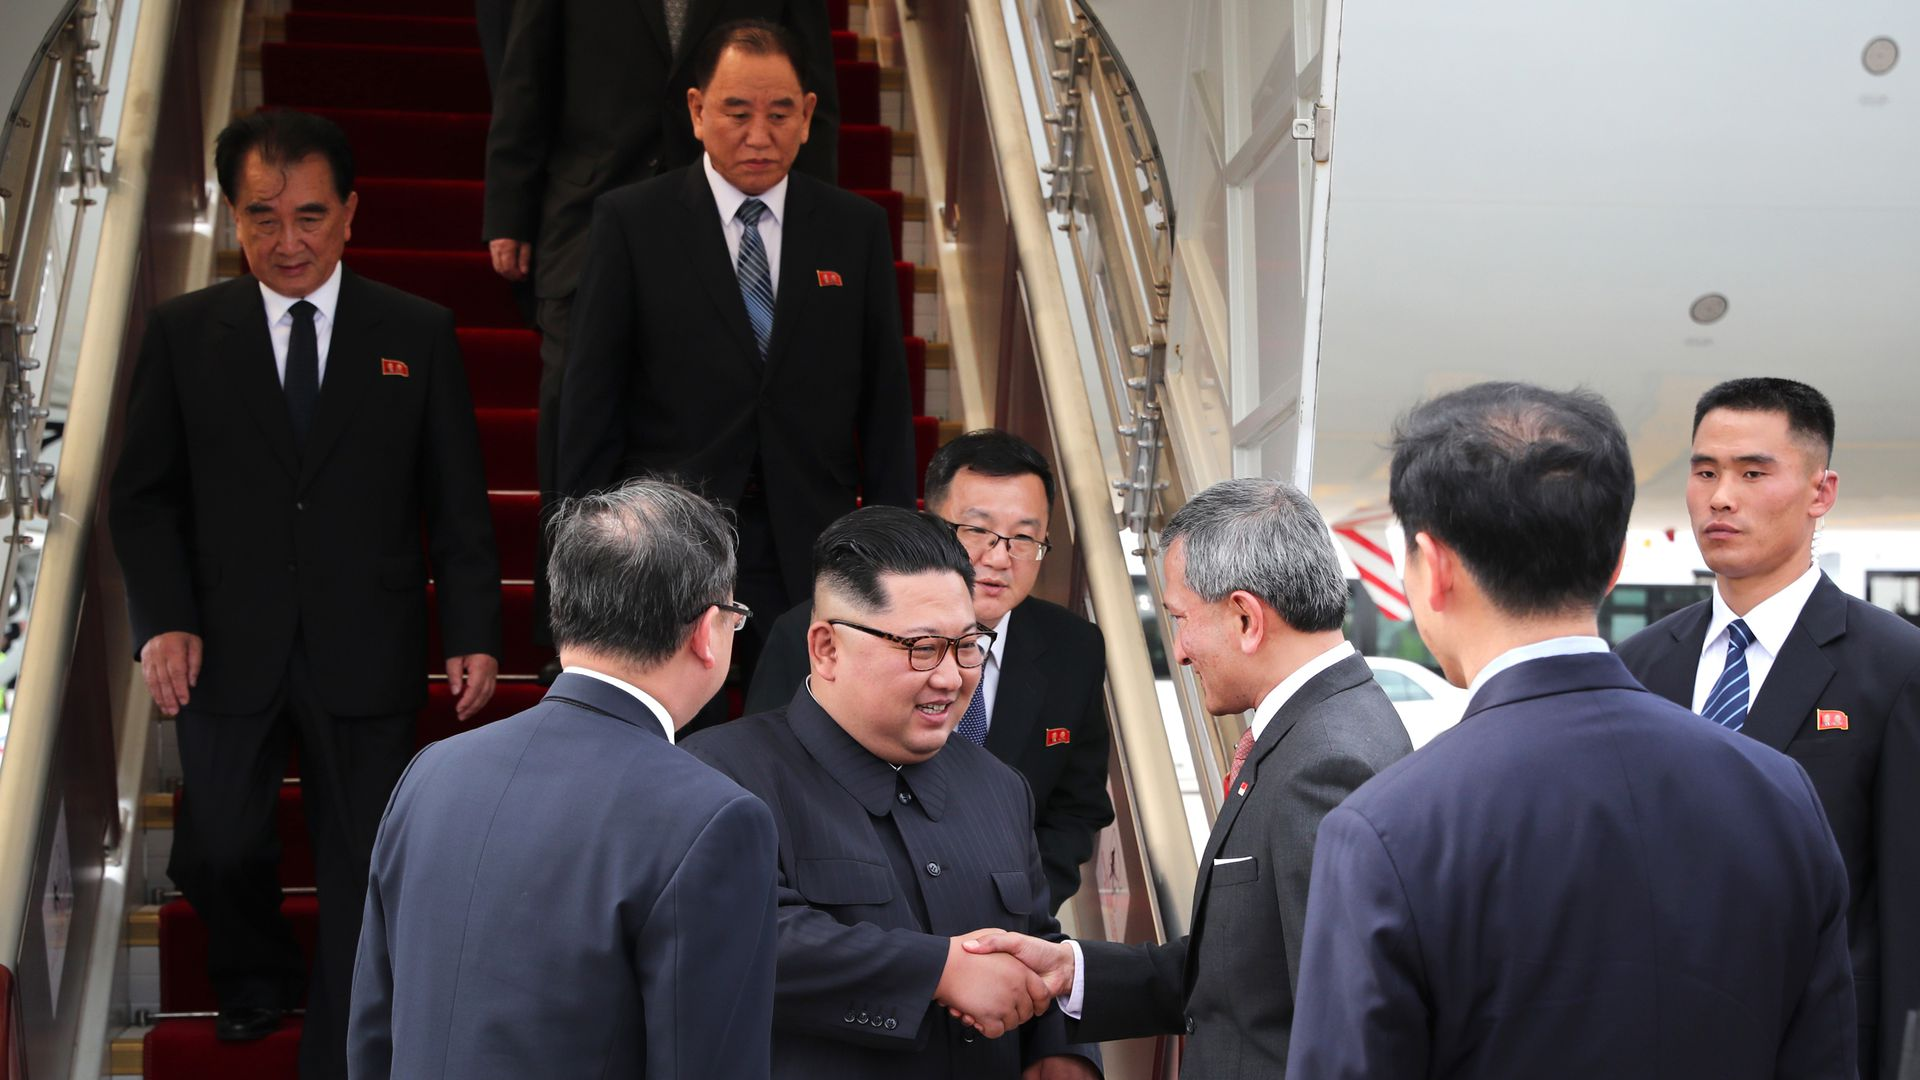 North Korean leader Kim Jong-un welcomed as he arrives in Singapore.